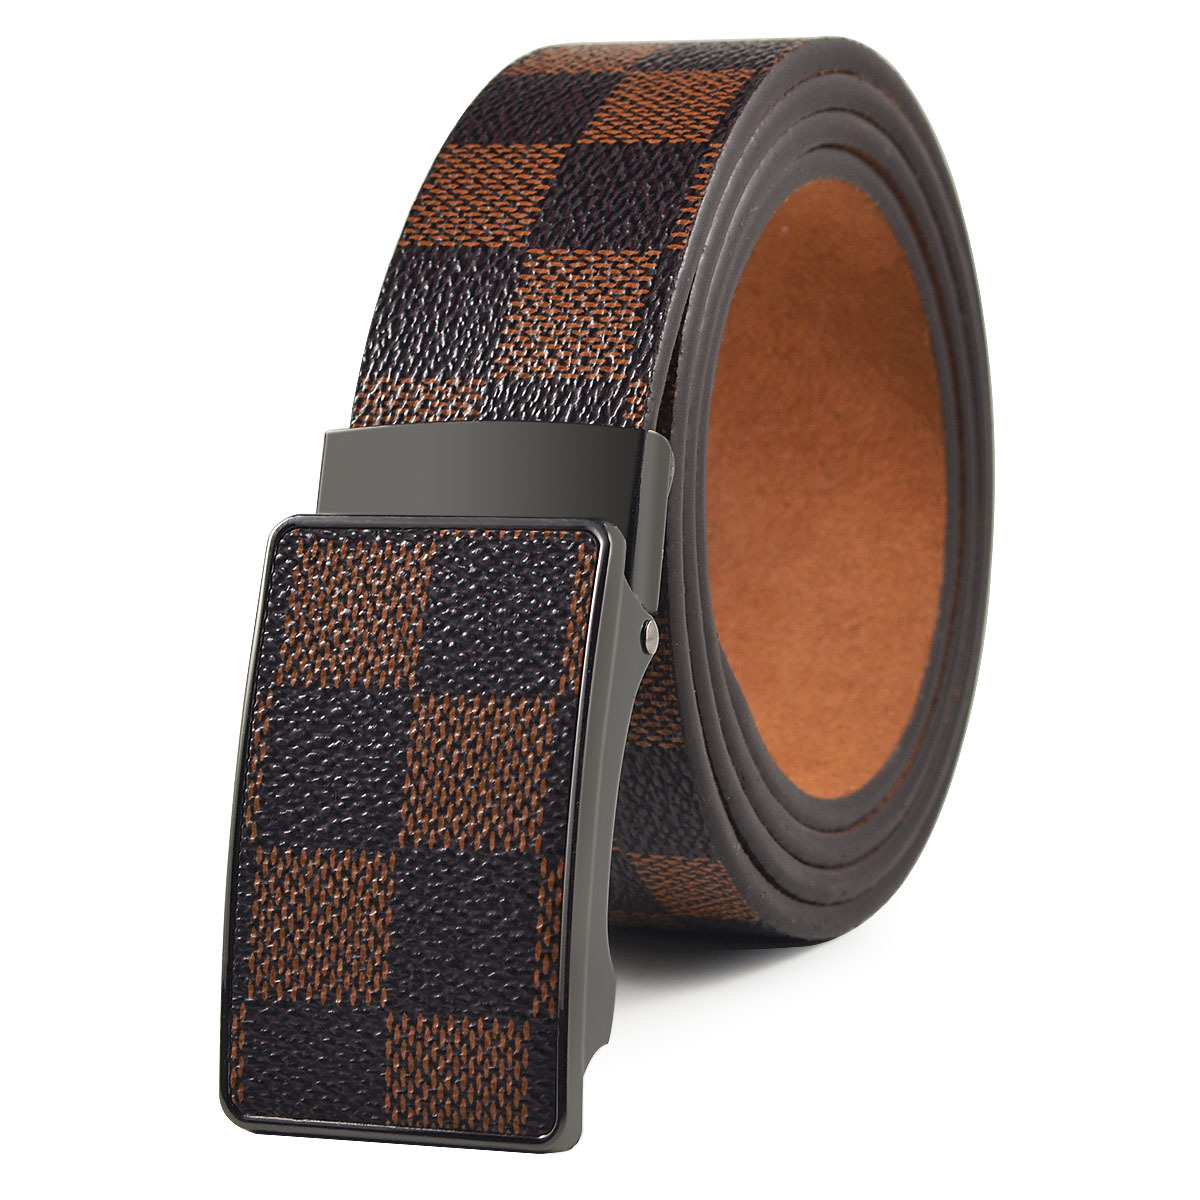 MEXICAN LATTICE NEW SIZE LARGE BELT CONCHO/'S BLACK LEATHER,WESTERN,COWBOY